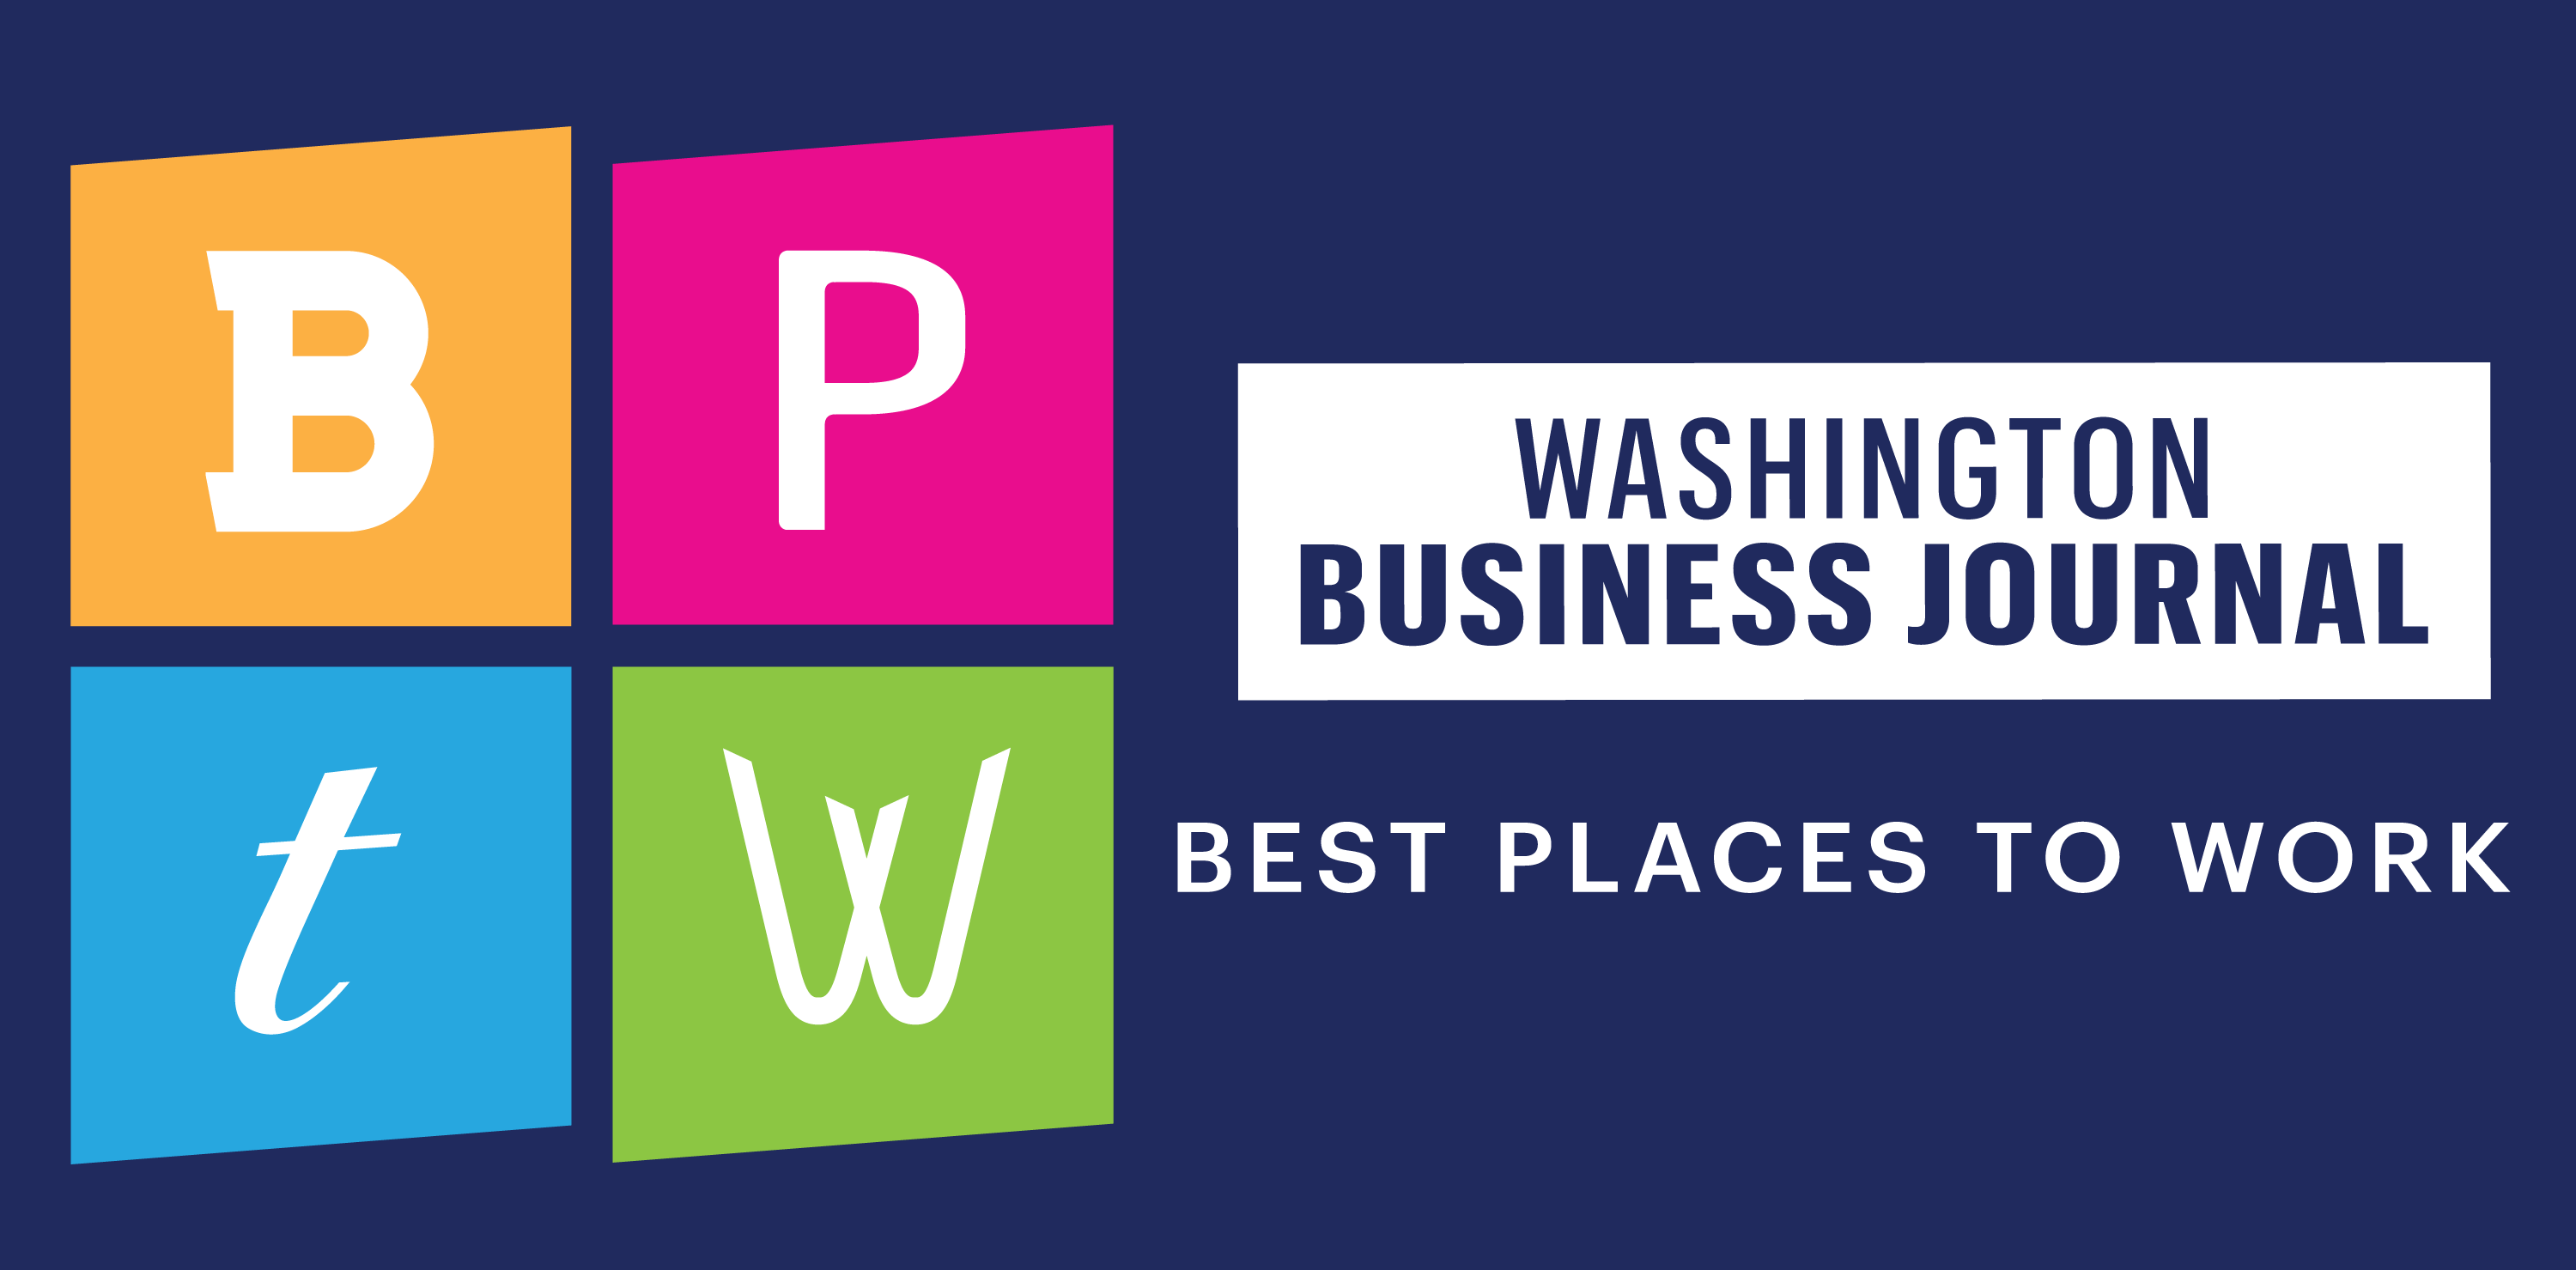 Washington Business Journal 2017 Best Places to Work Header-01.png